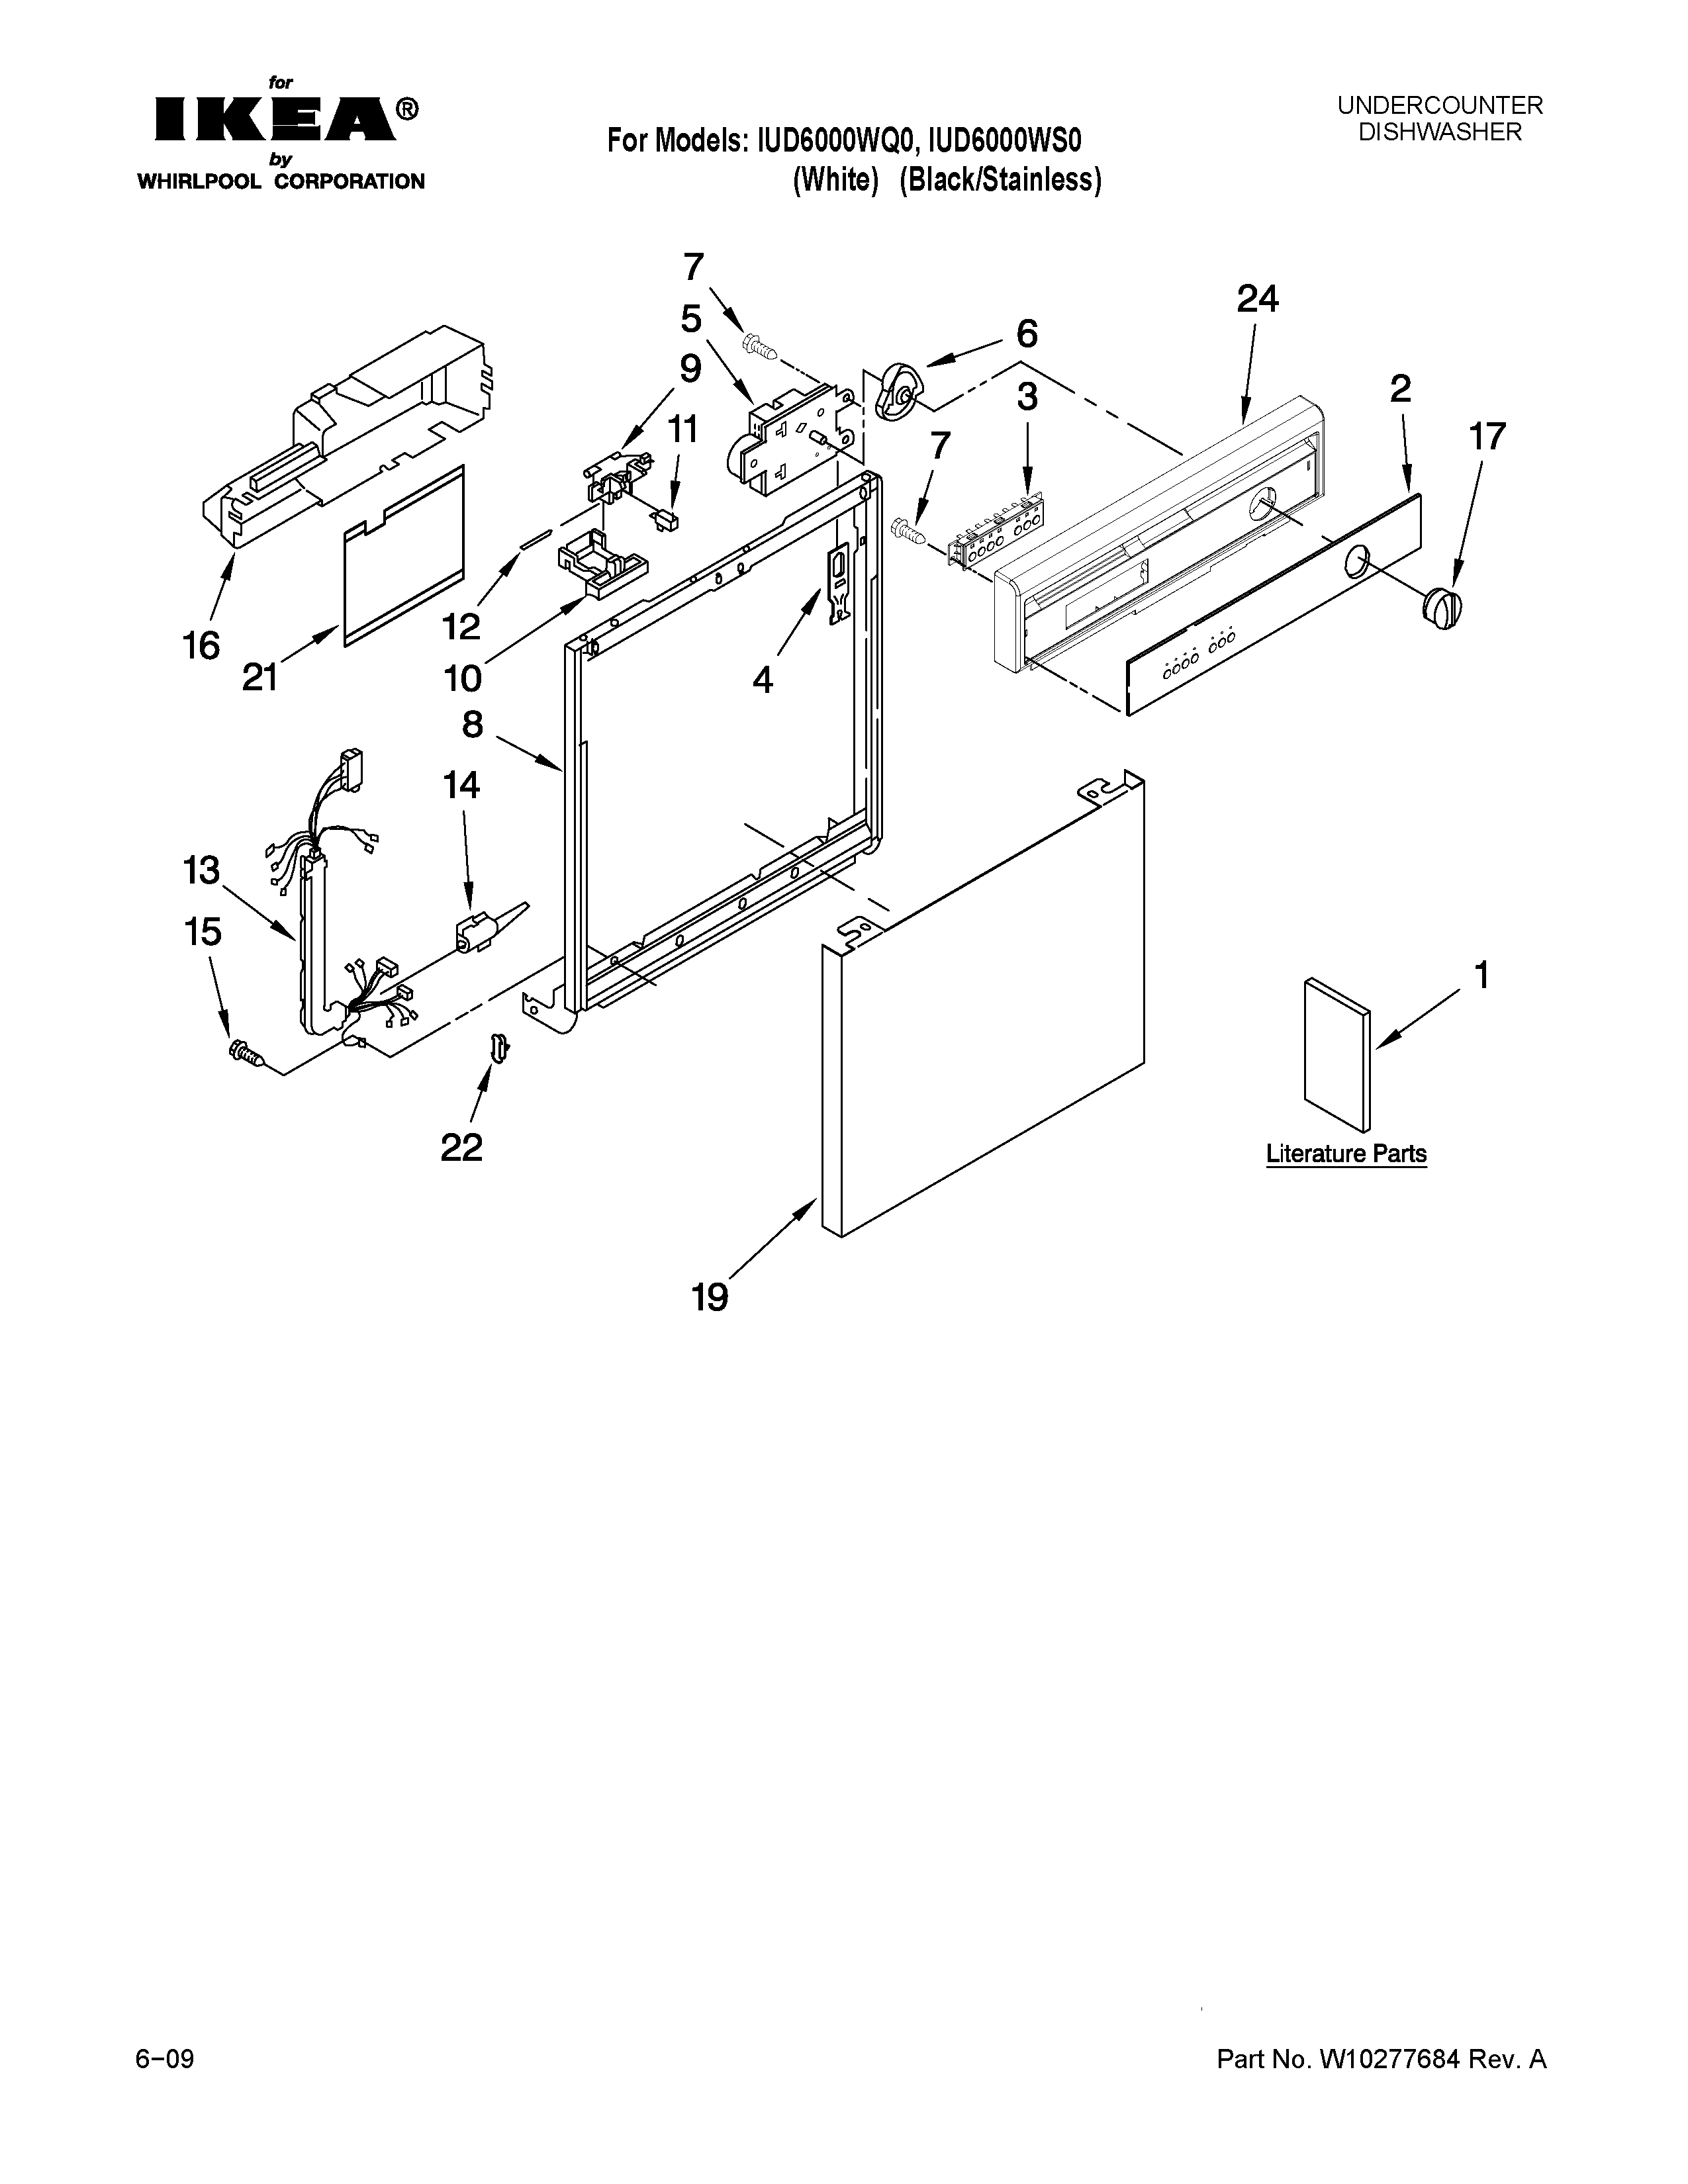 Ikea IUD6000WQ0 frame and console parts diagram